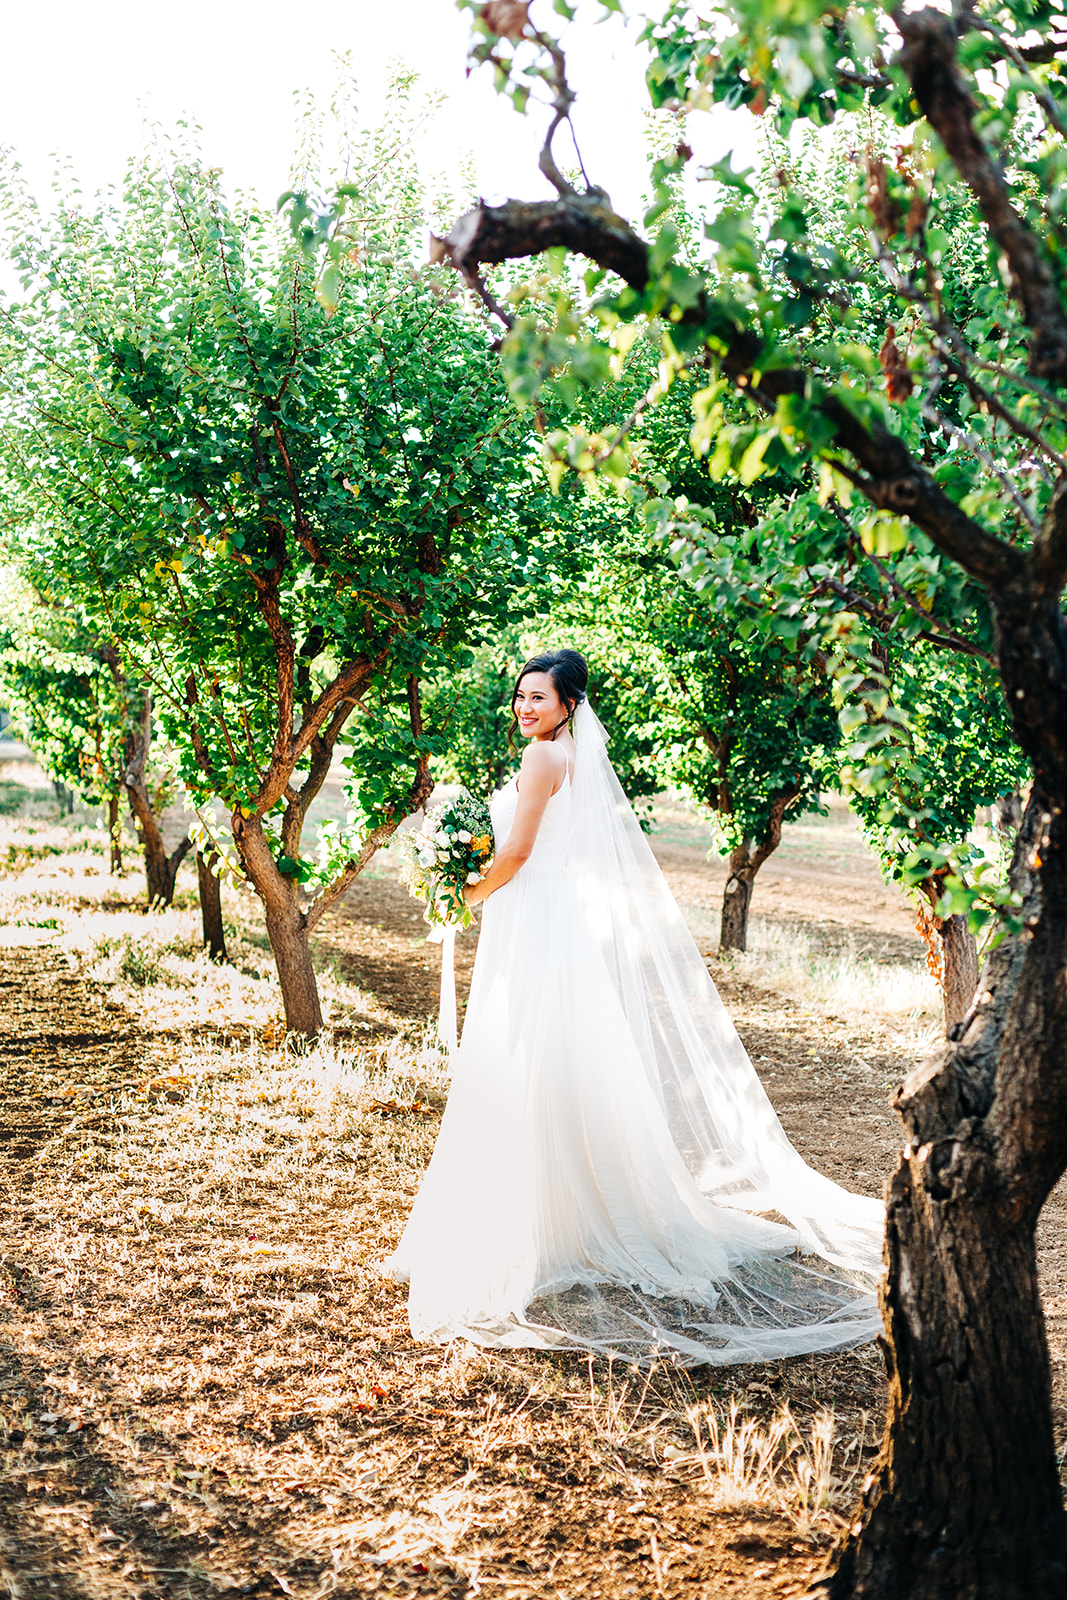 Los-Altos-History-Museum-Wedding_Orange-County-Wedding-Photographer_Clarisse-Rae-Photo-Video_82